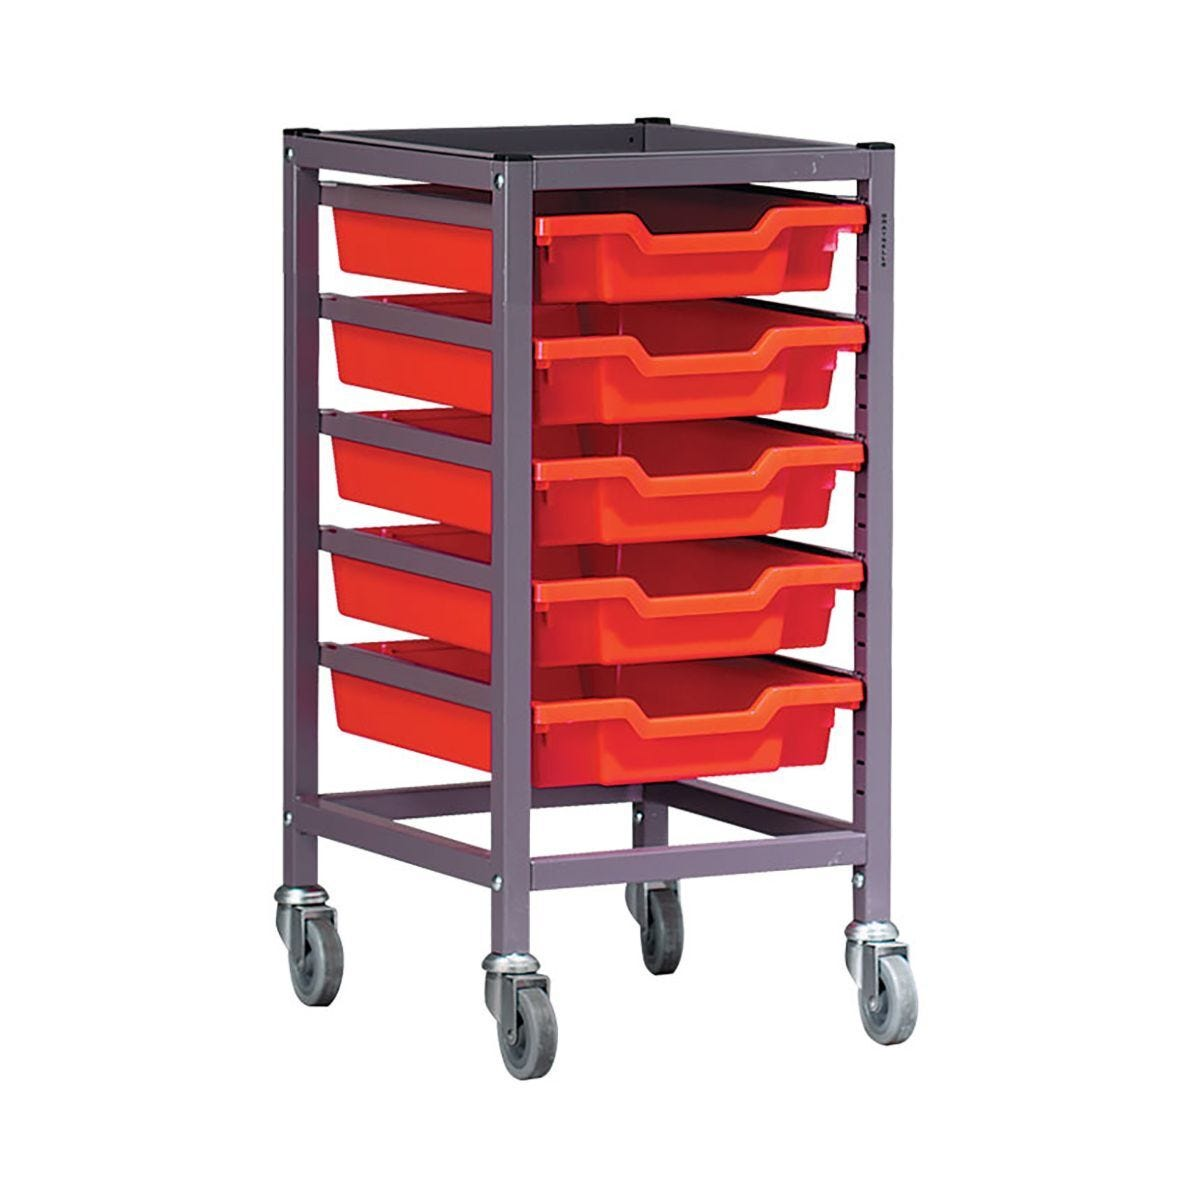 Gratnells Single Column Trolley 5 Tray